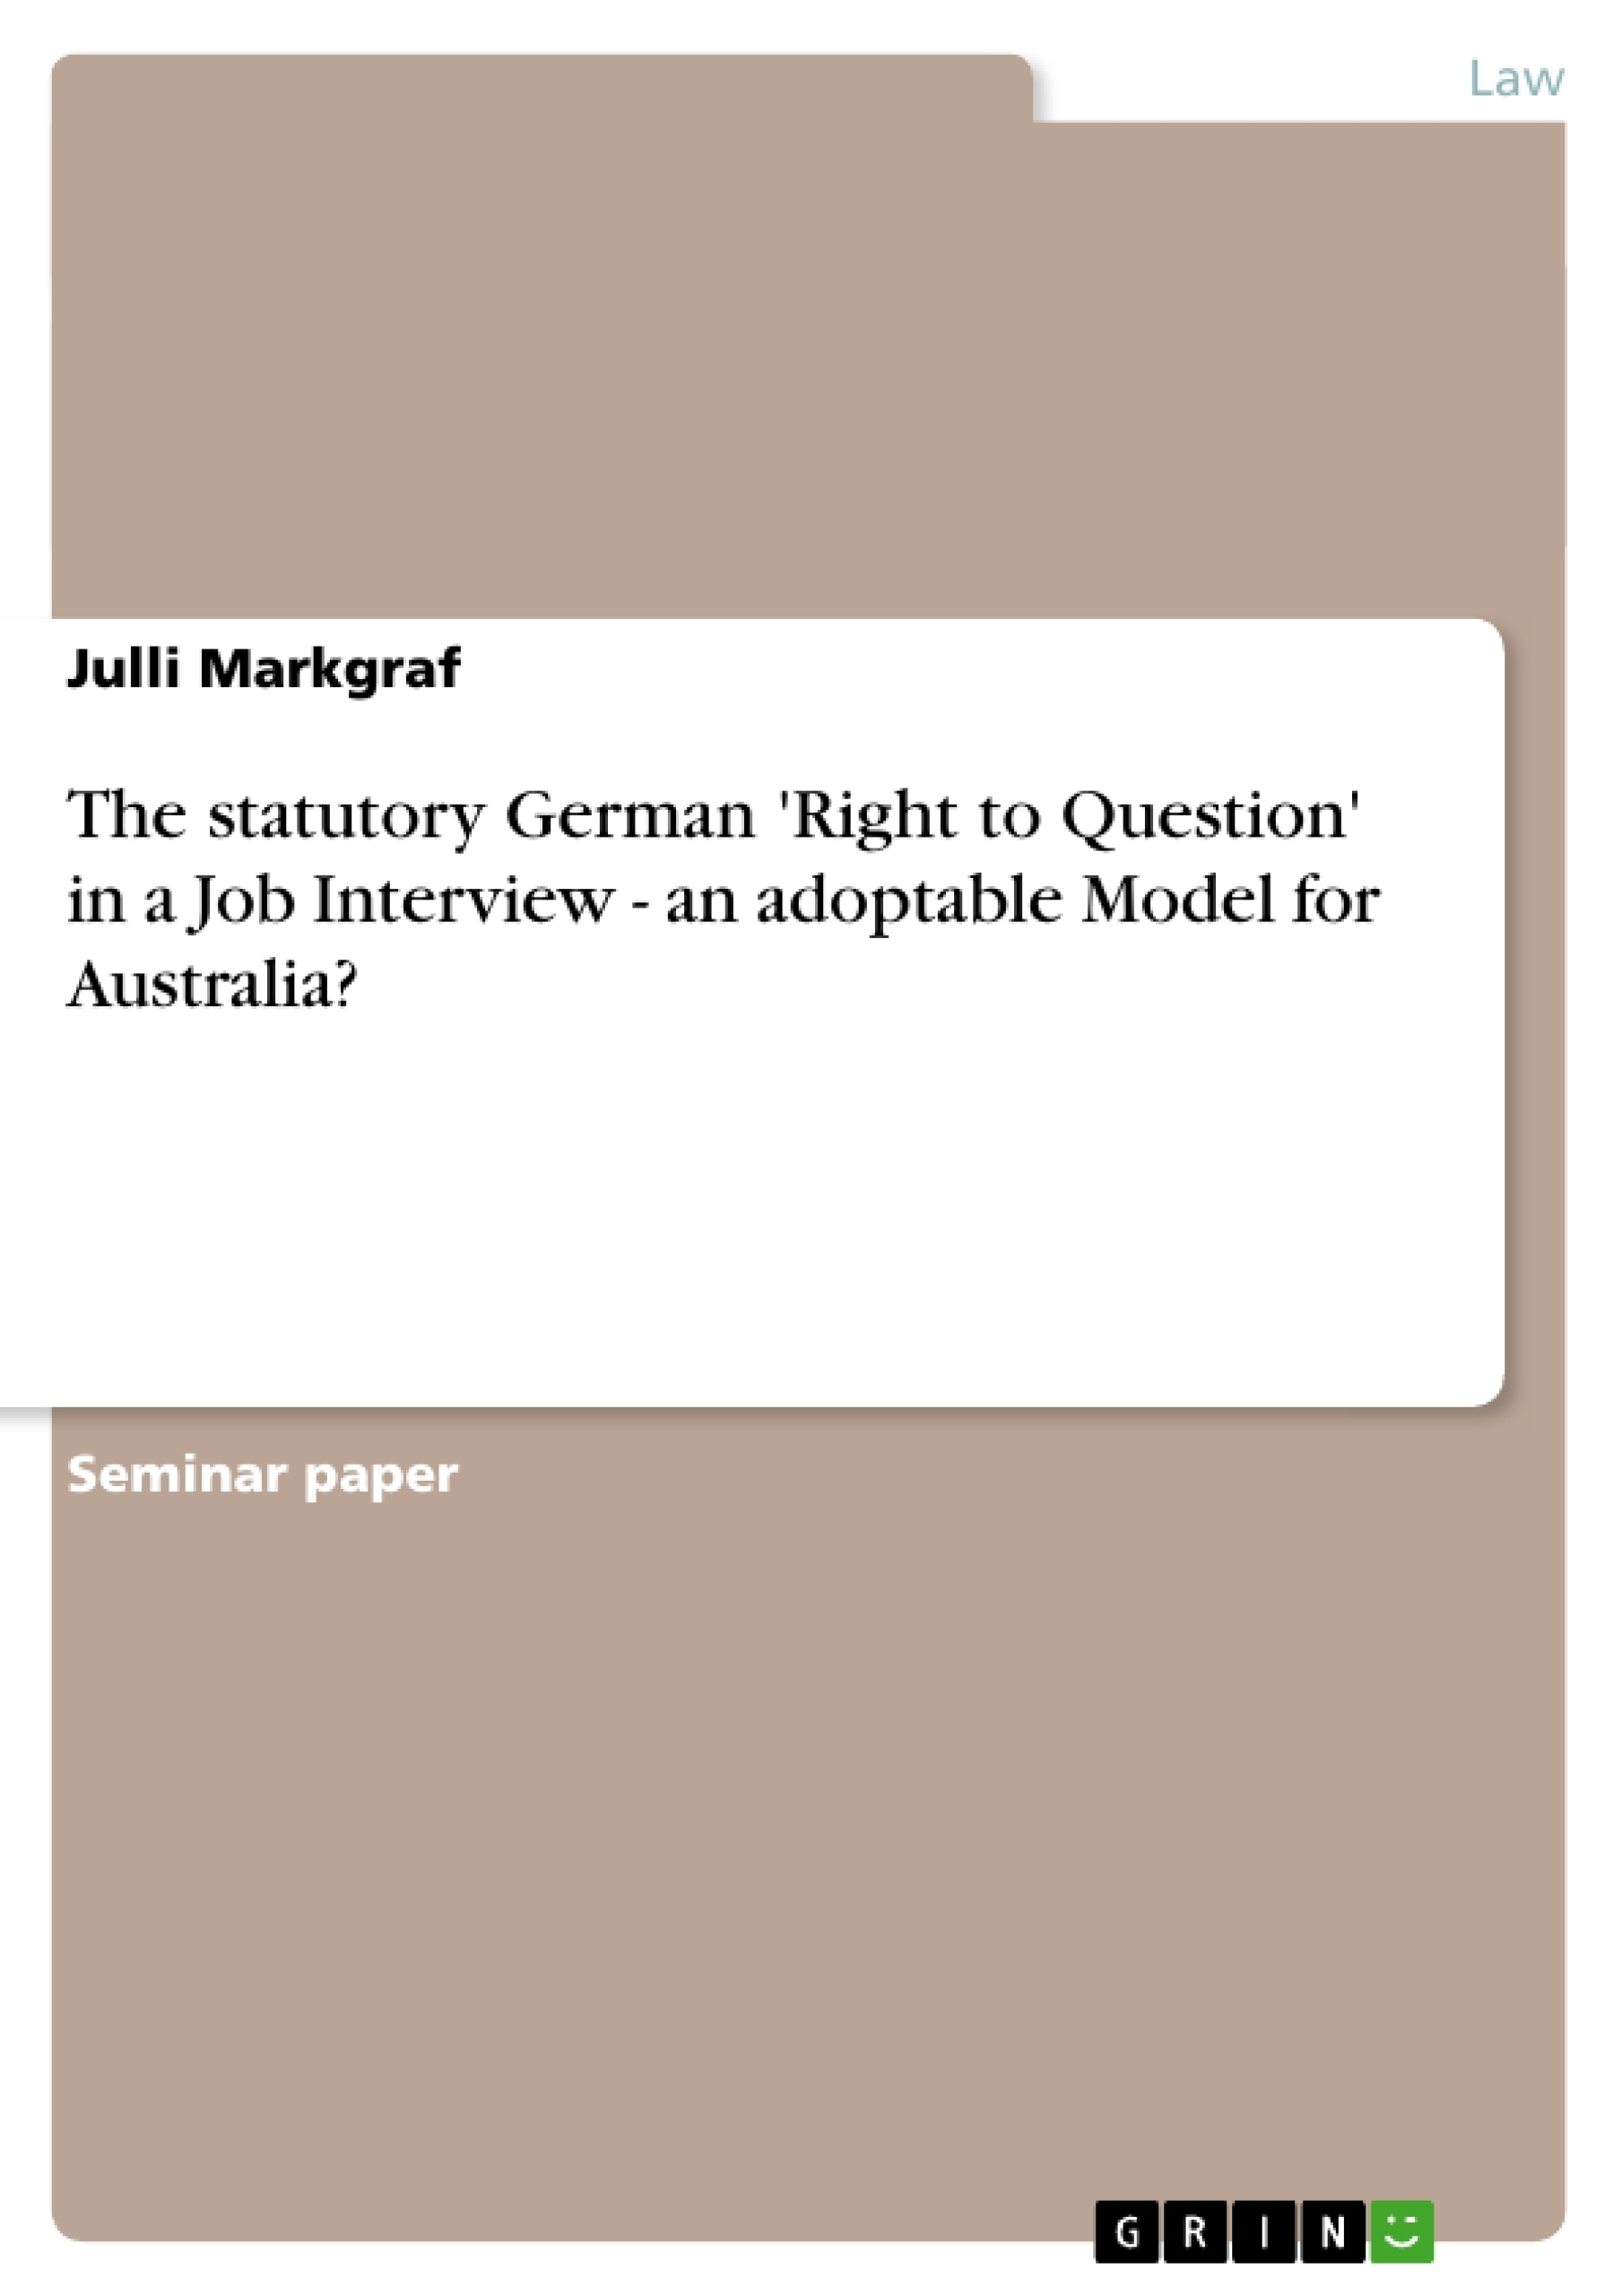 Title: The statutory German 'Right to Question' in a Job Interview - an adoptable Model for Australia?